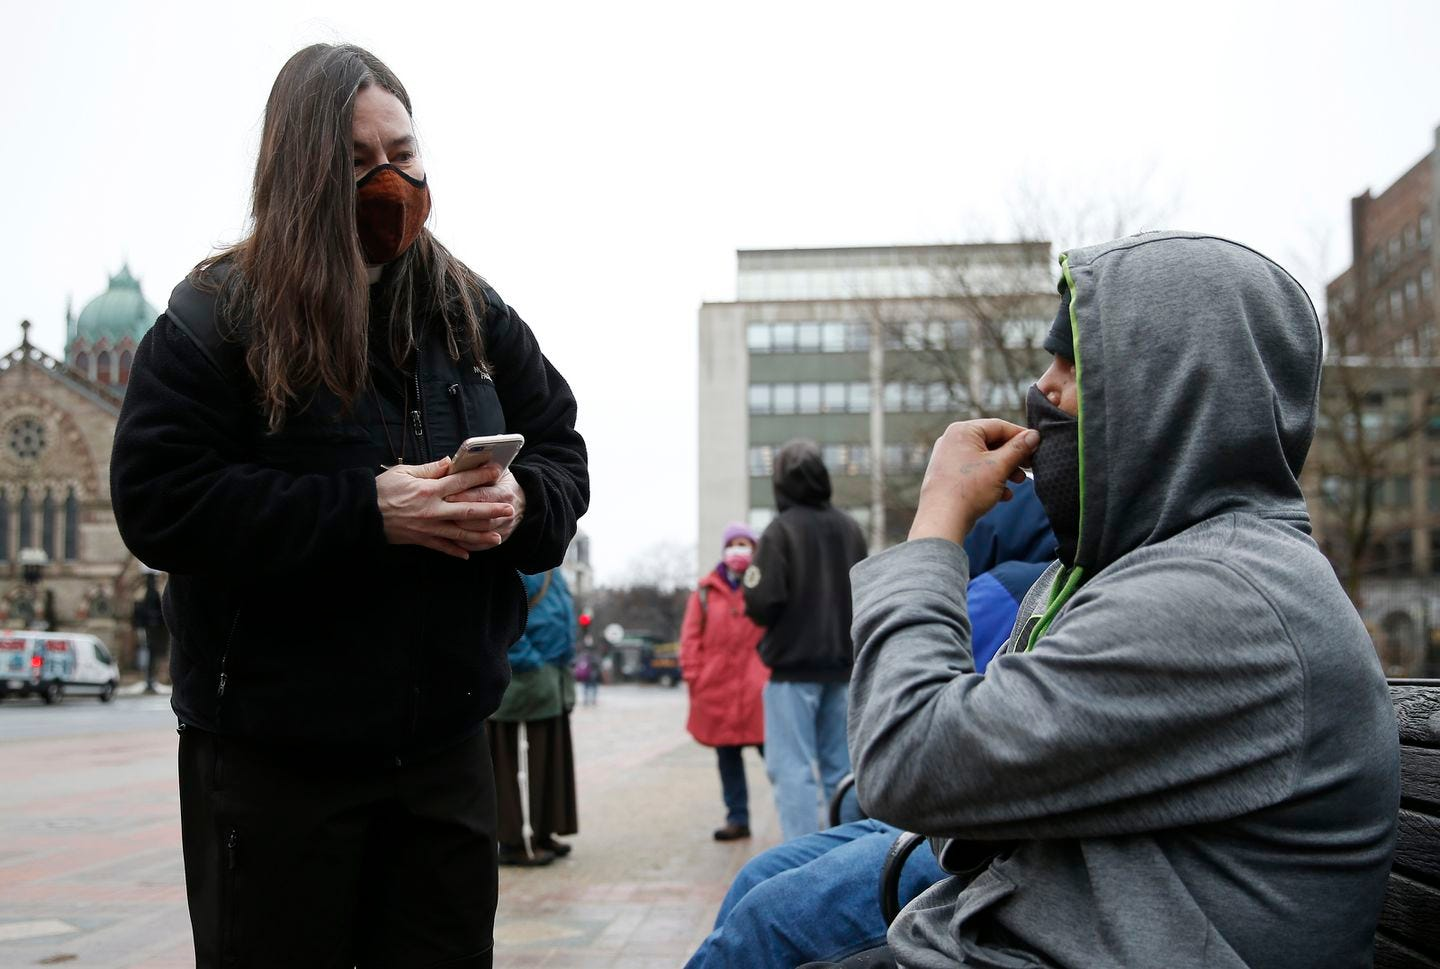 Boston, MA -- 3/1/21 -- Lisa Loughlin, a chaplain who is part of 'Common Cathedral' an organization which has ecumenical services on Boston Common, offers her phone to a homeless man in Copley Square who had asked to use it so he could try and call a family member.  (Jessica Rinaldi/Globe Staff)